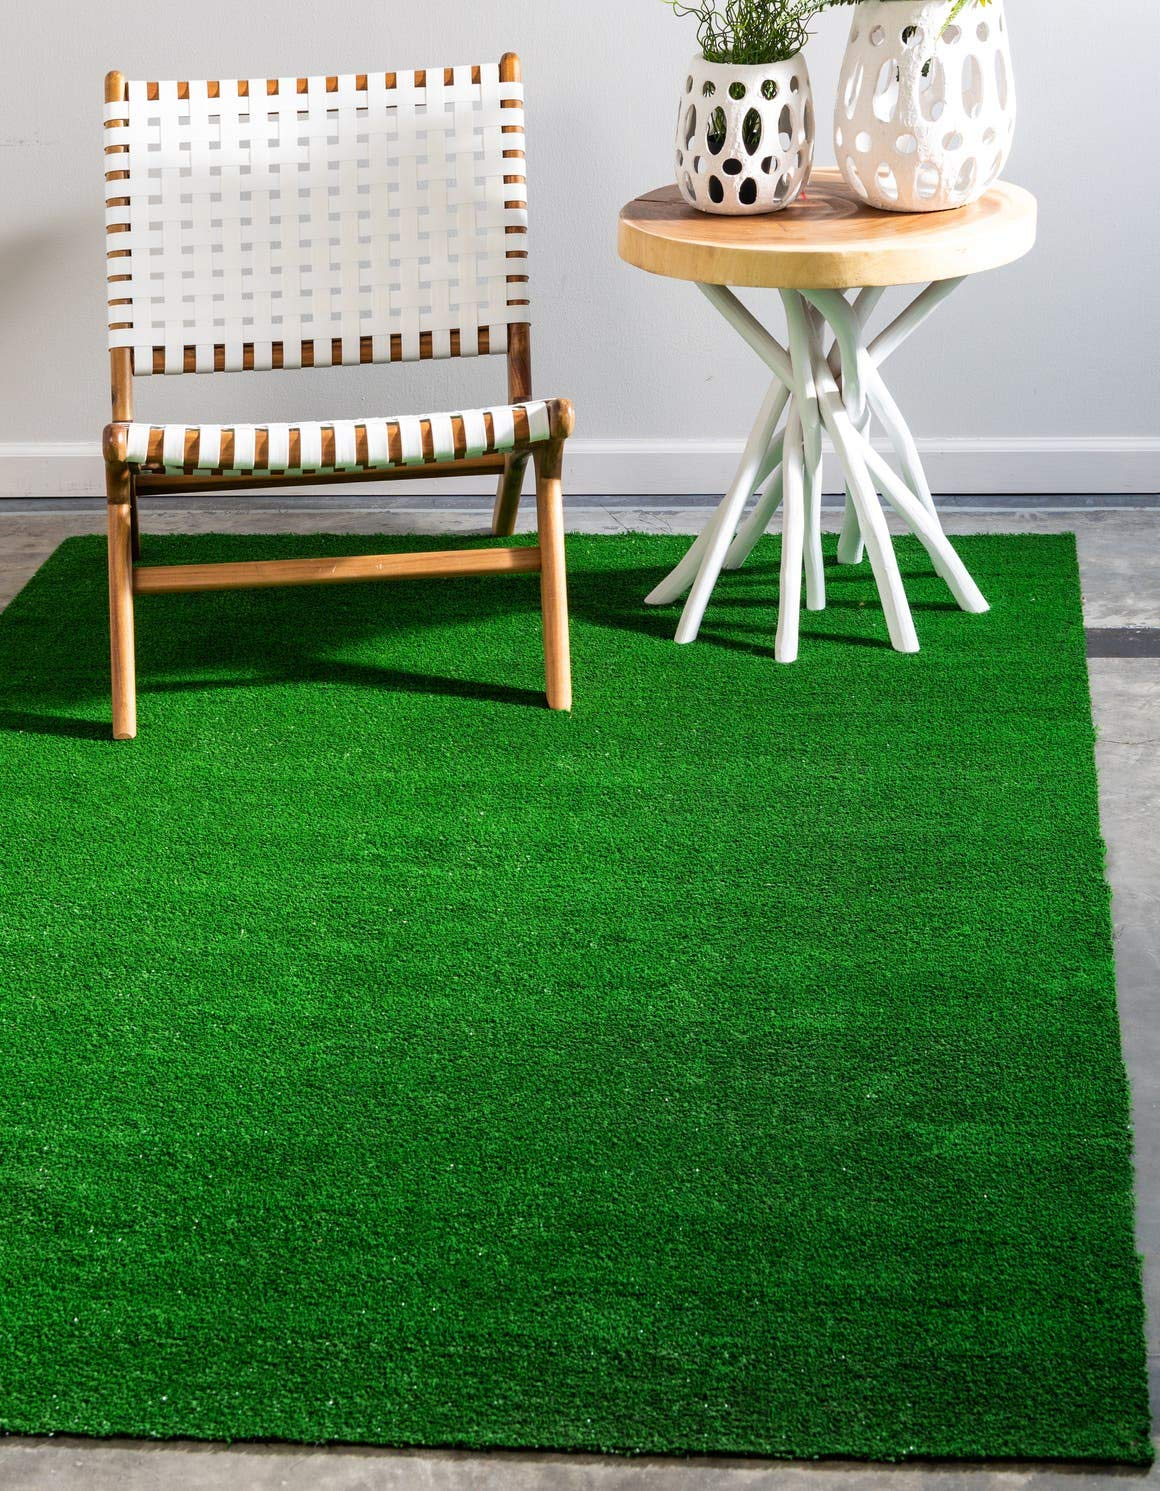 Unique Loom Outdoor Grass Collection Modern Transitional Indoor and Outdoor Flatweave Green Area Rug 4 0 x 6 0